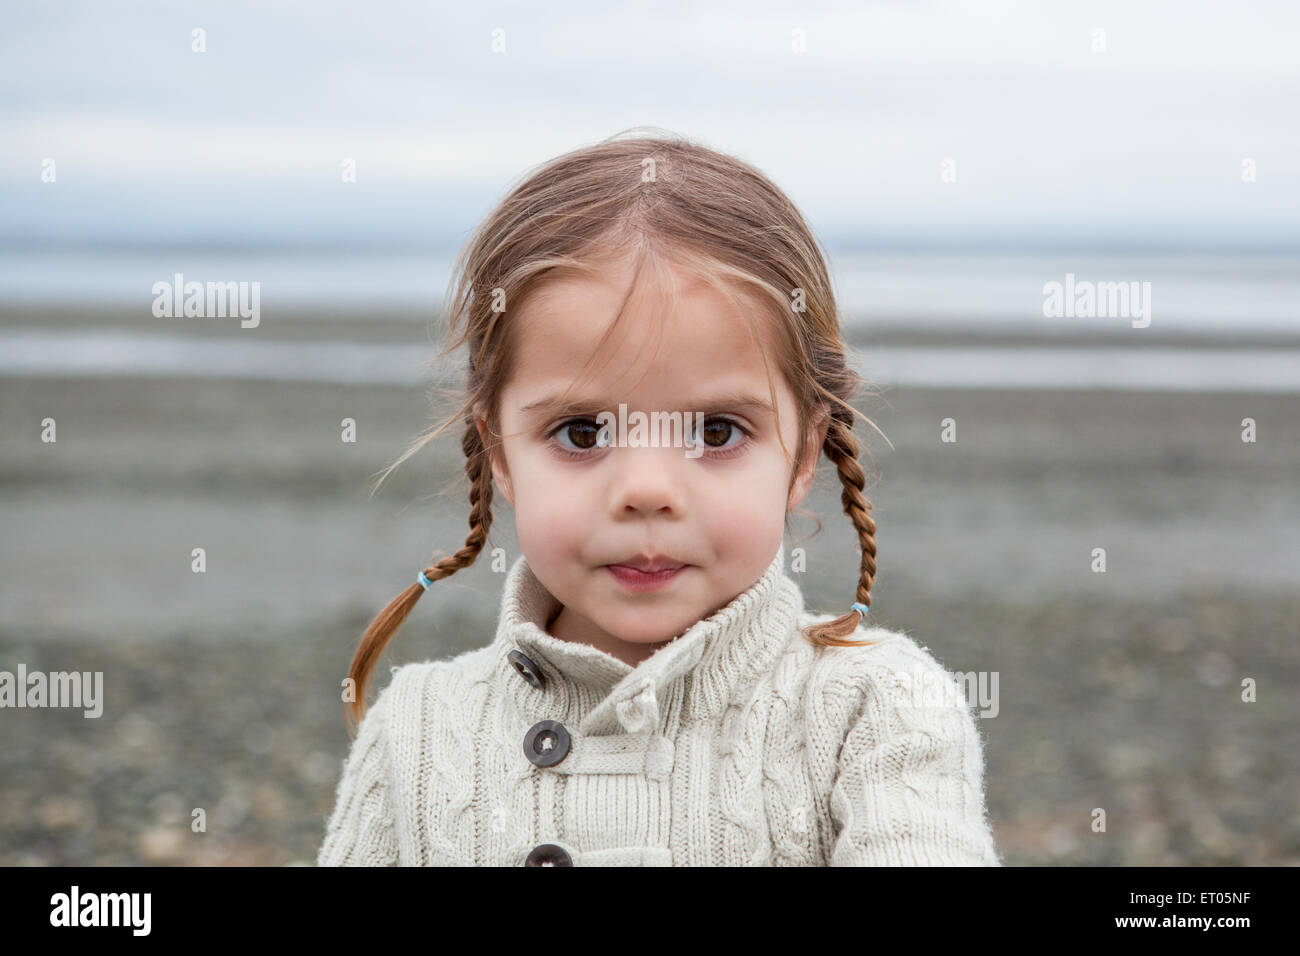 Portrait of serious girl with braided pigtails on beach - Stock Image